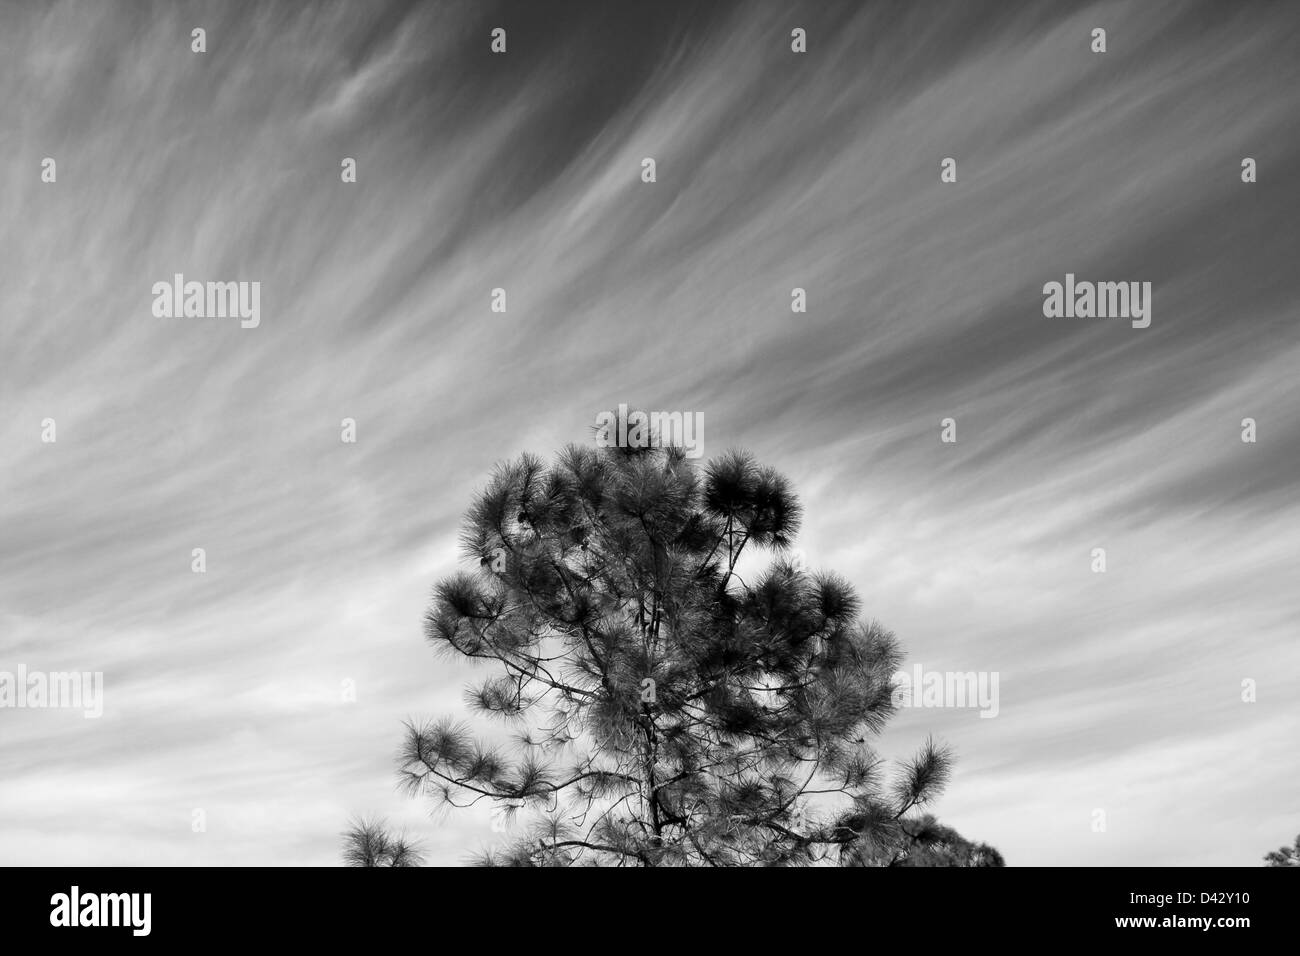 Cirrus clouds above a slash pine - Stock Image